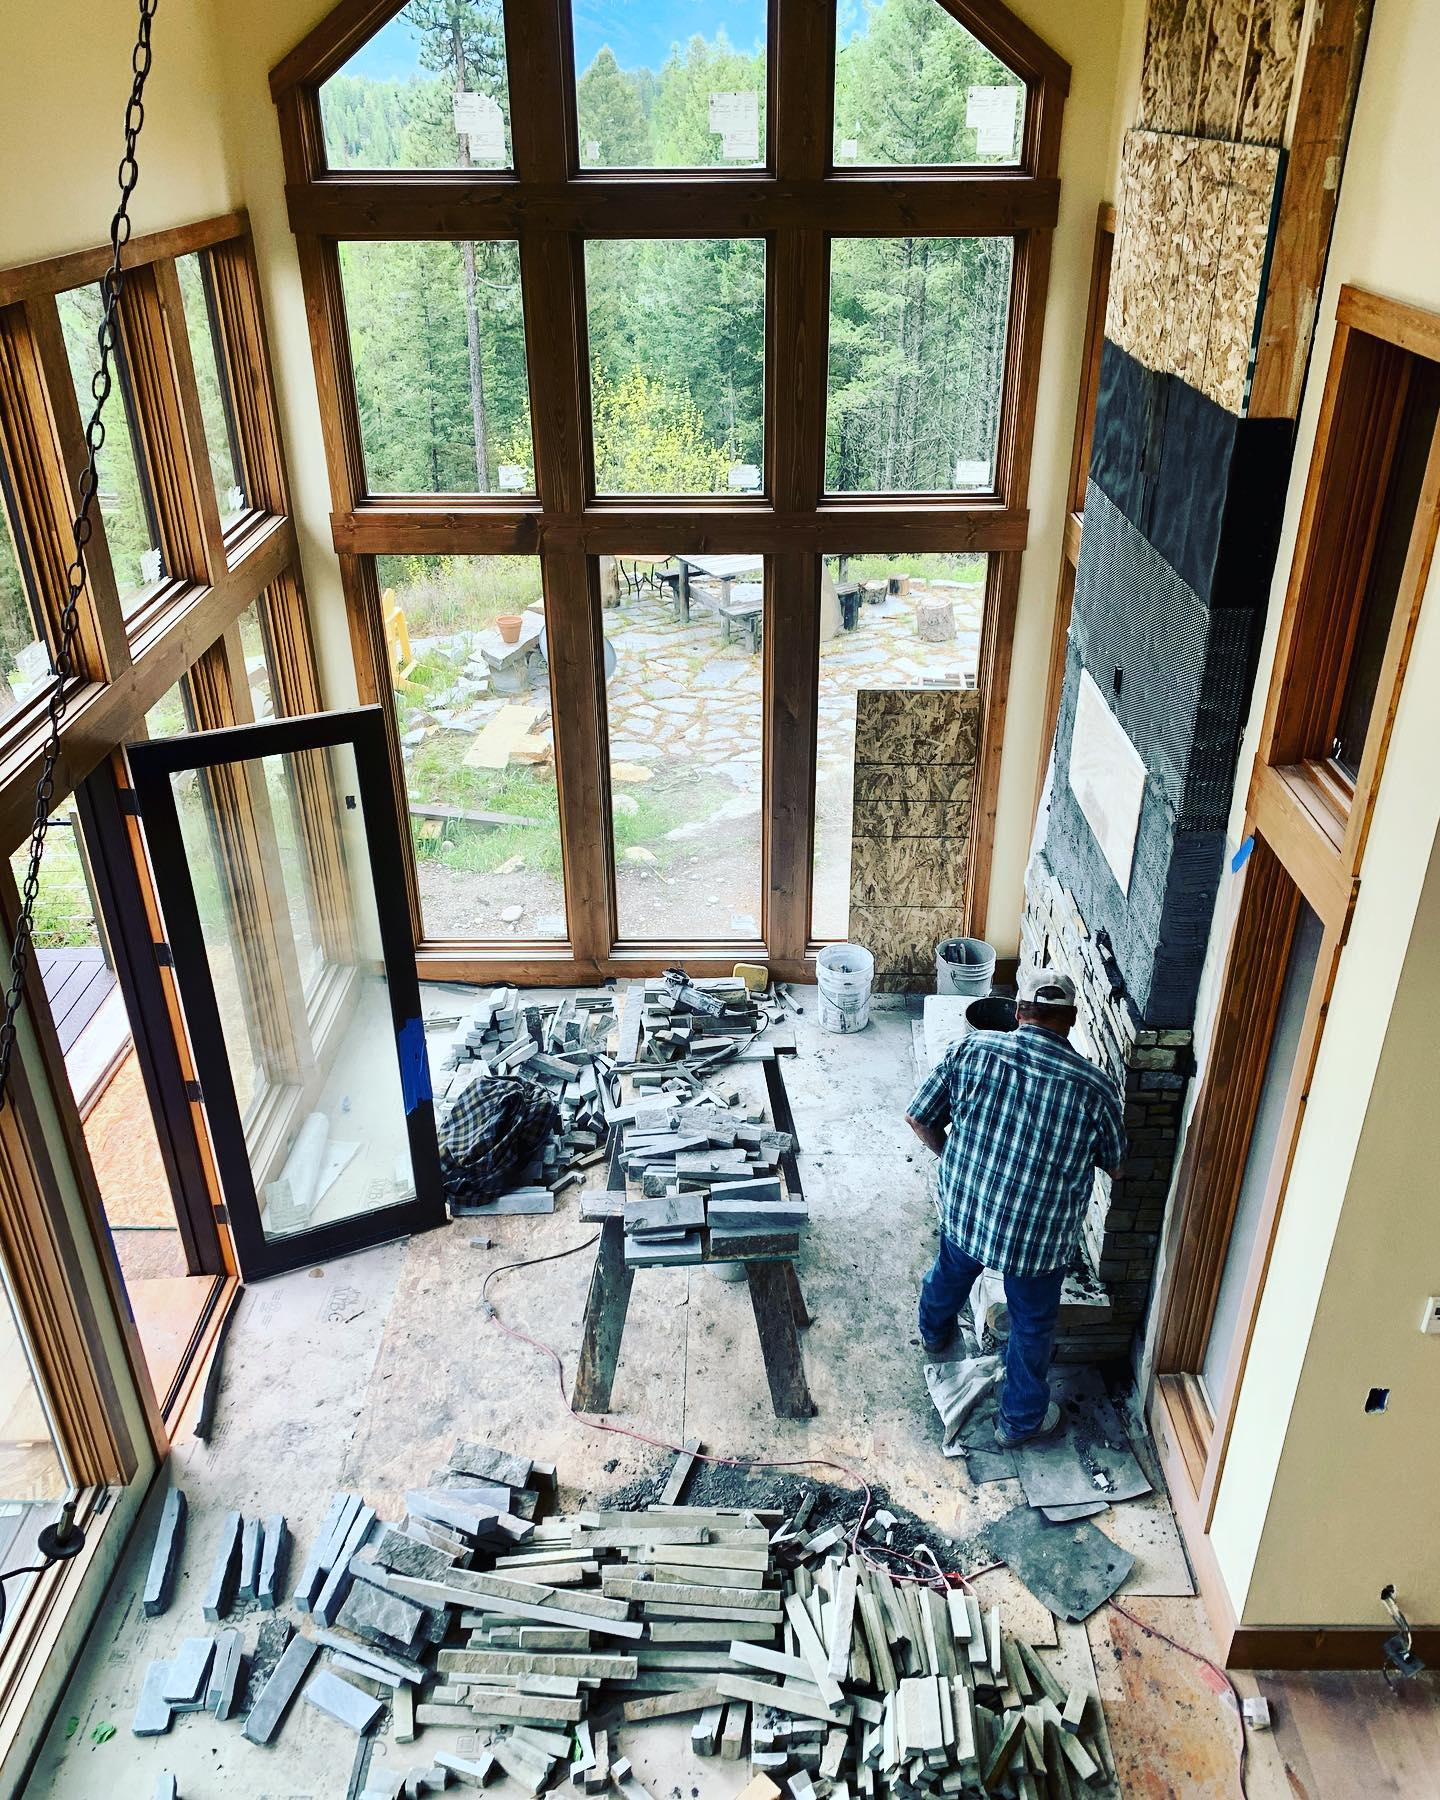 Another masterpiece in the works. And how about those windows?!? whitefish custom home builder